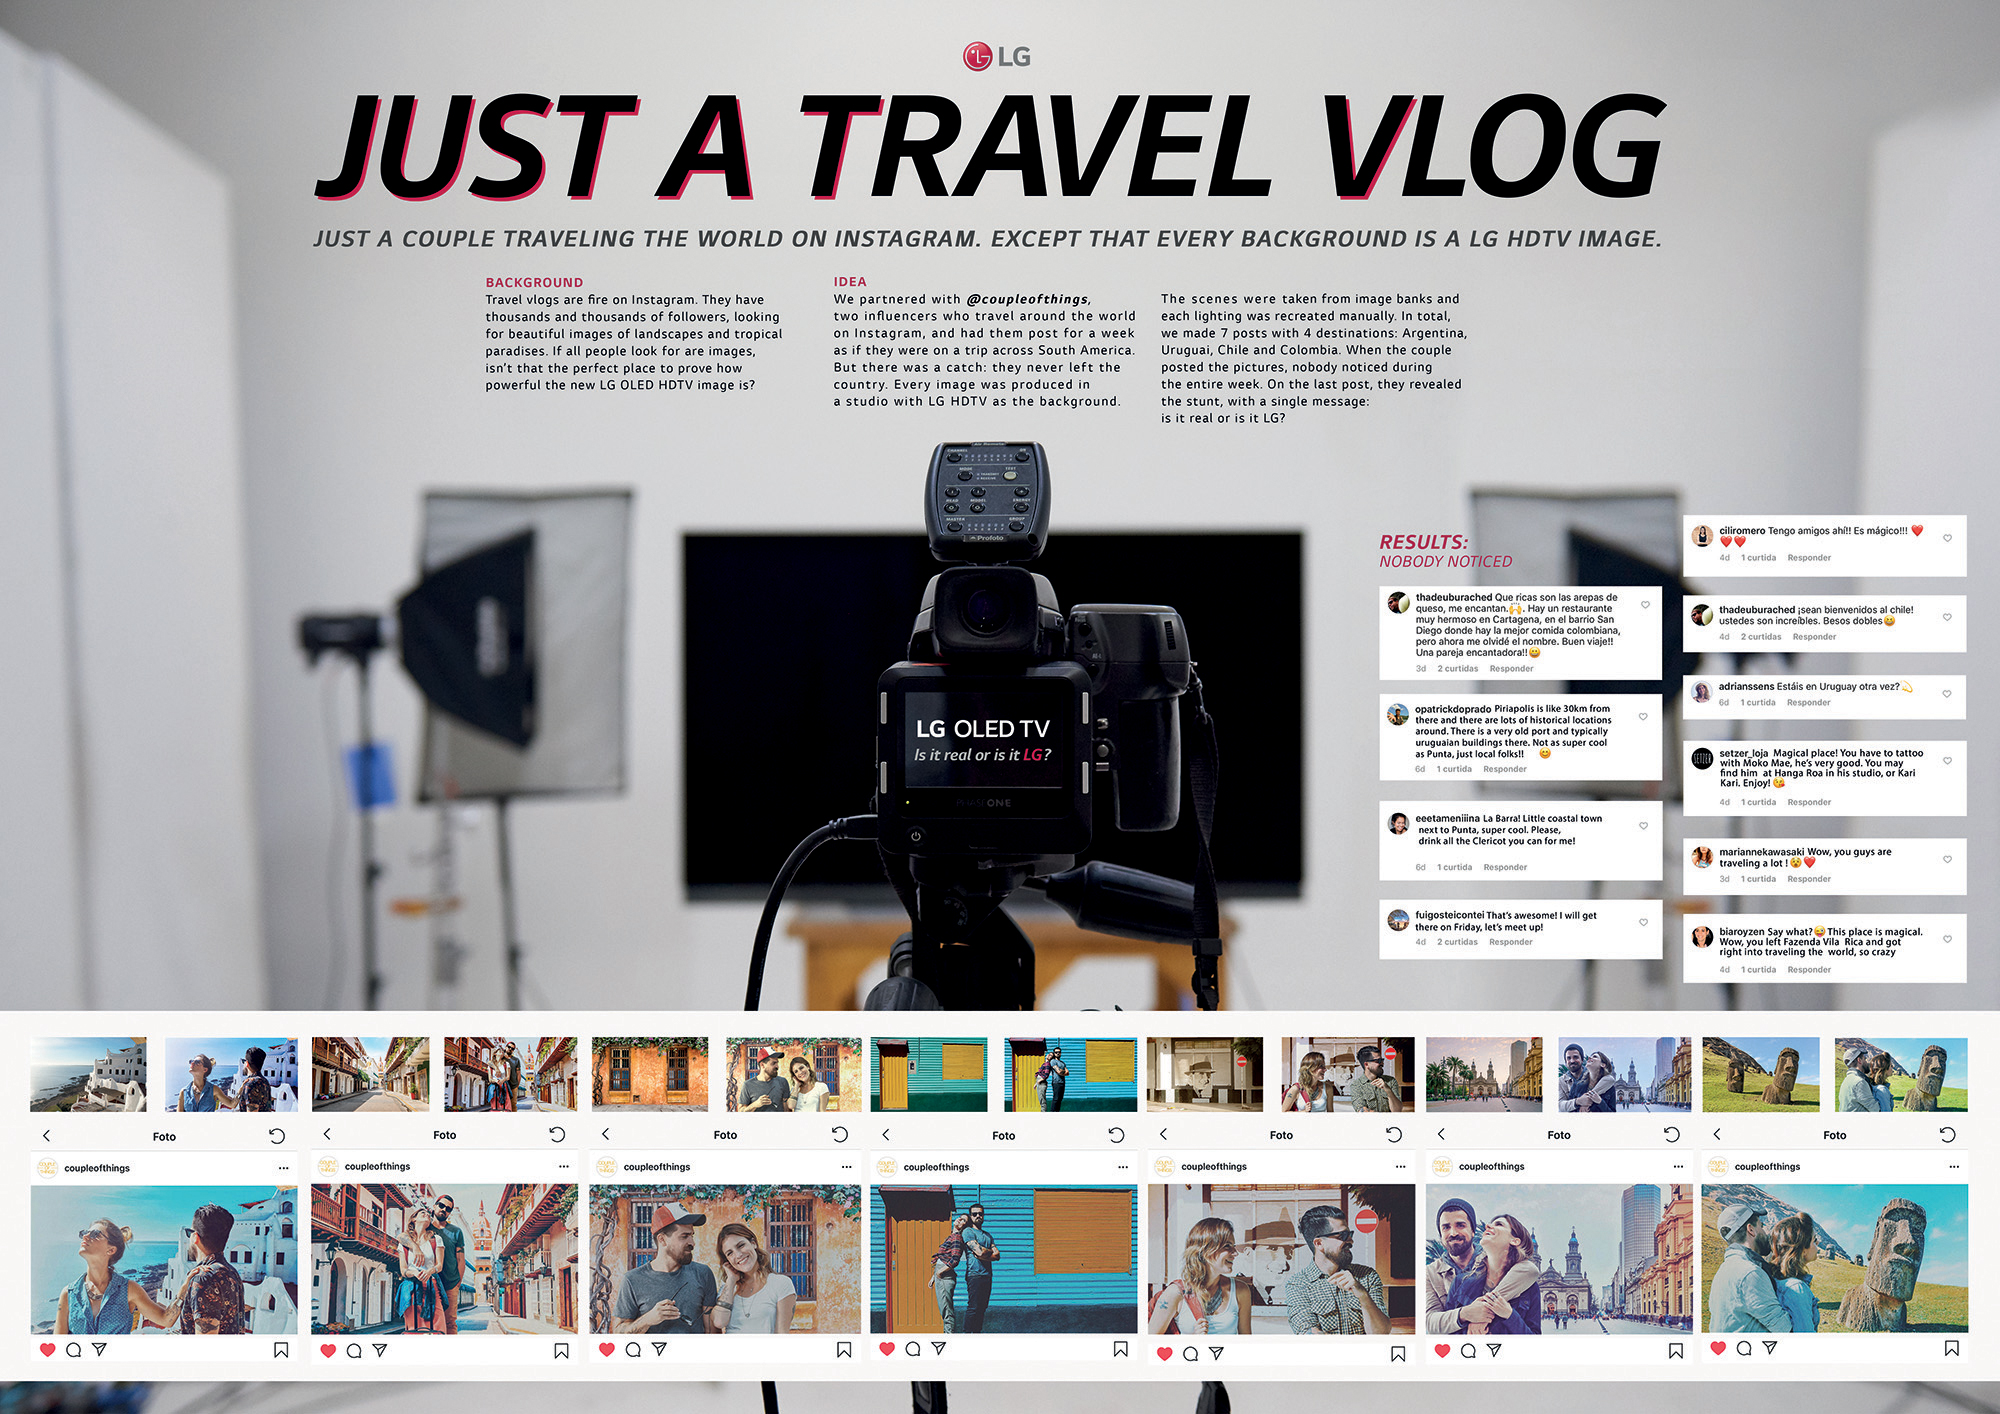 LG_Just-a-Travel-Vlog-copy-light-web.jpg